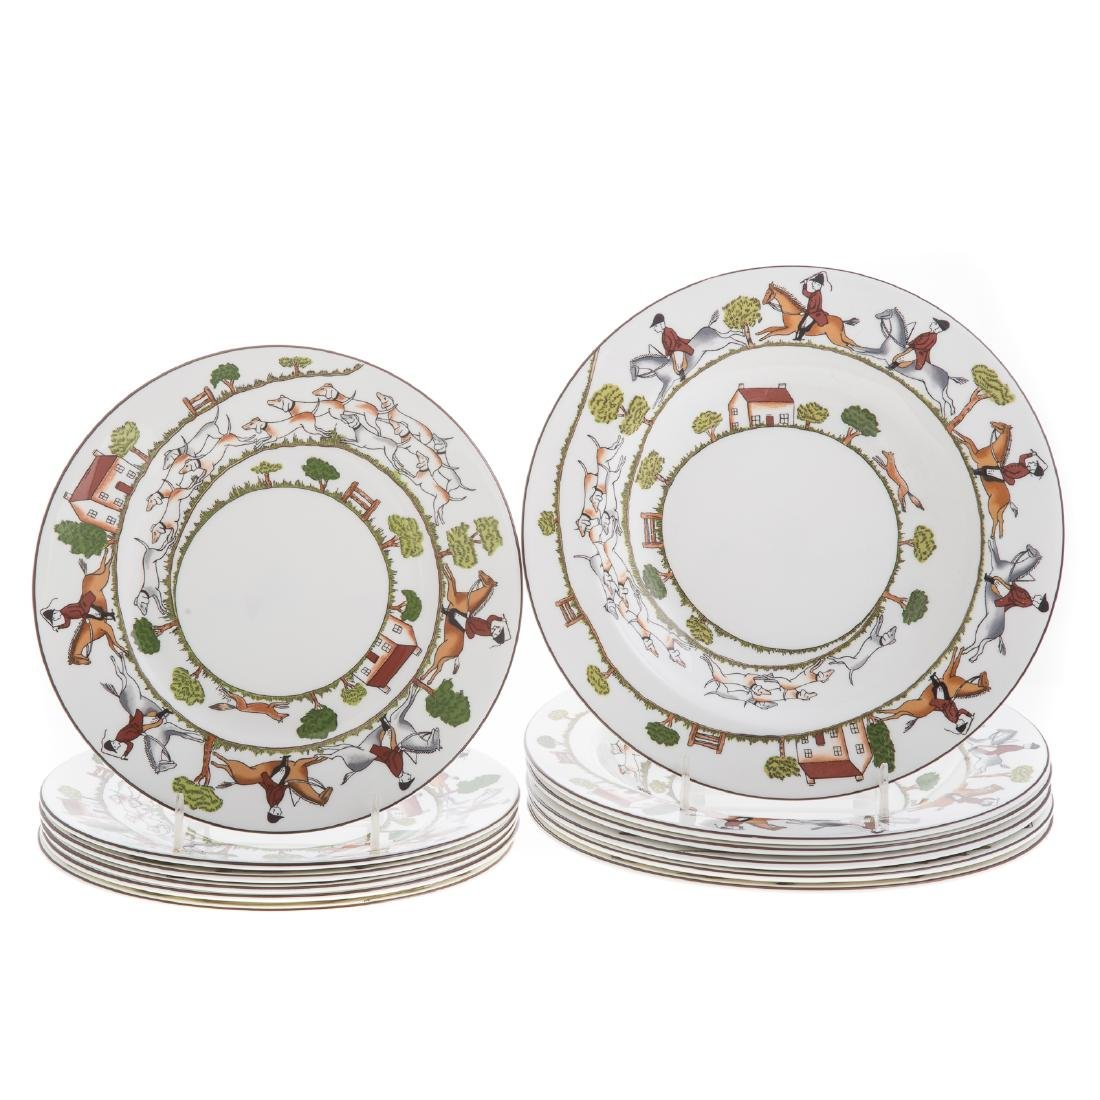 Wedgwood china 33-piece partial dinner service - 5